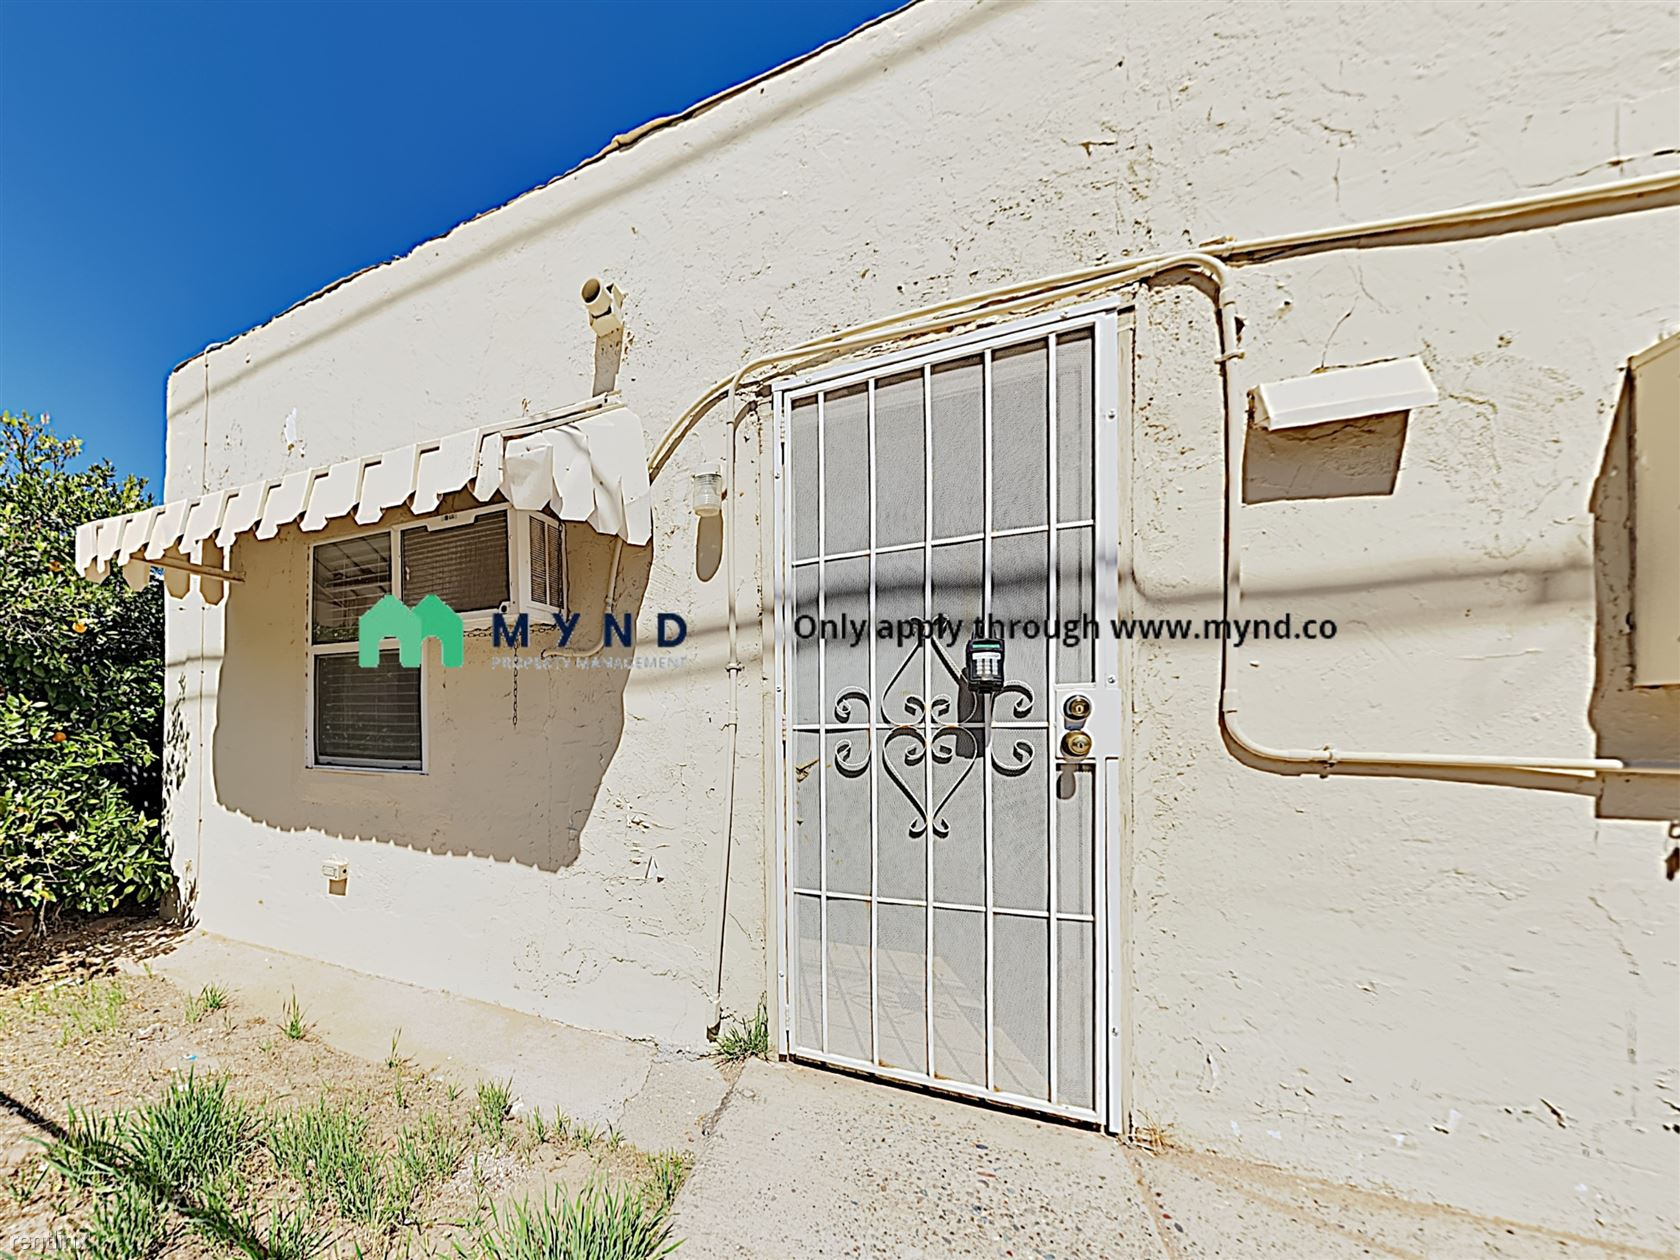 667 W Northern Ave Unit C, Coolidge, AZ - $525